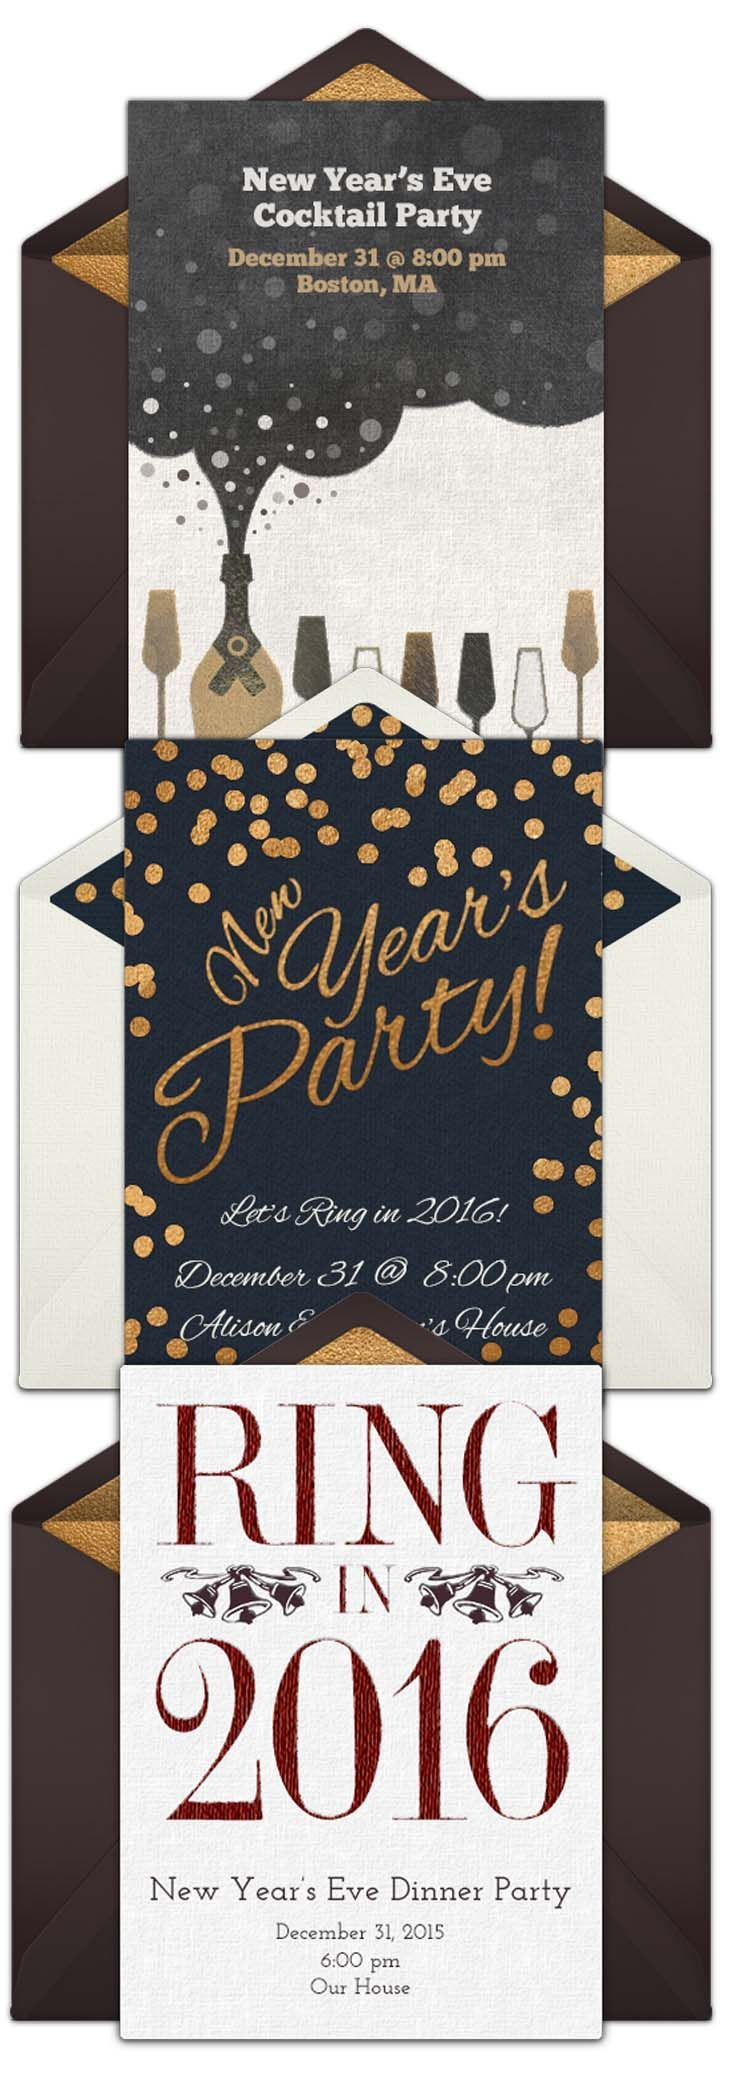 Online Invitations From New Year S Eve Party Pinterest Invite